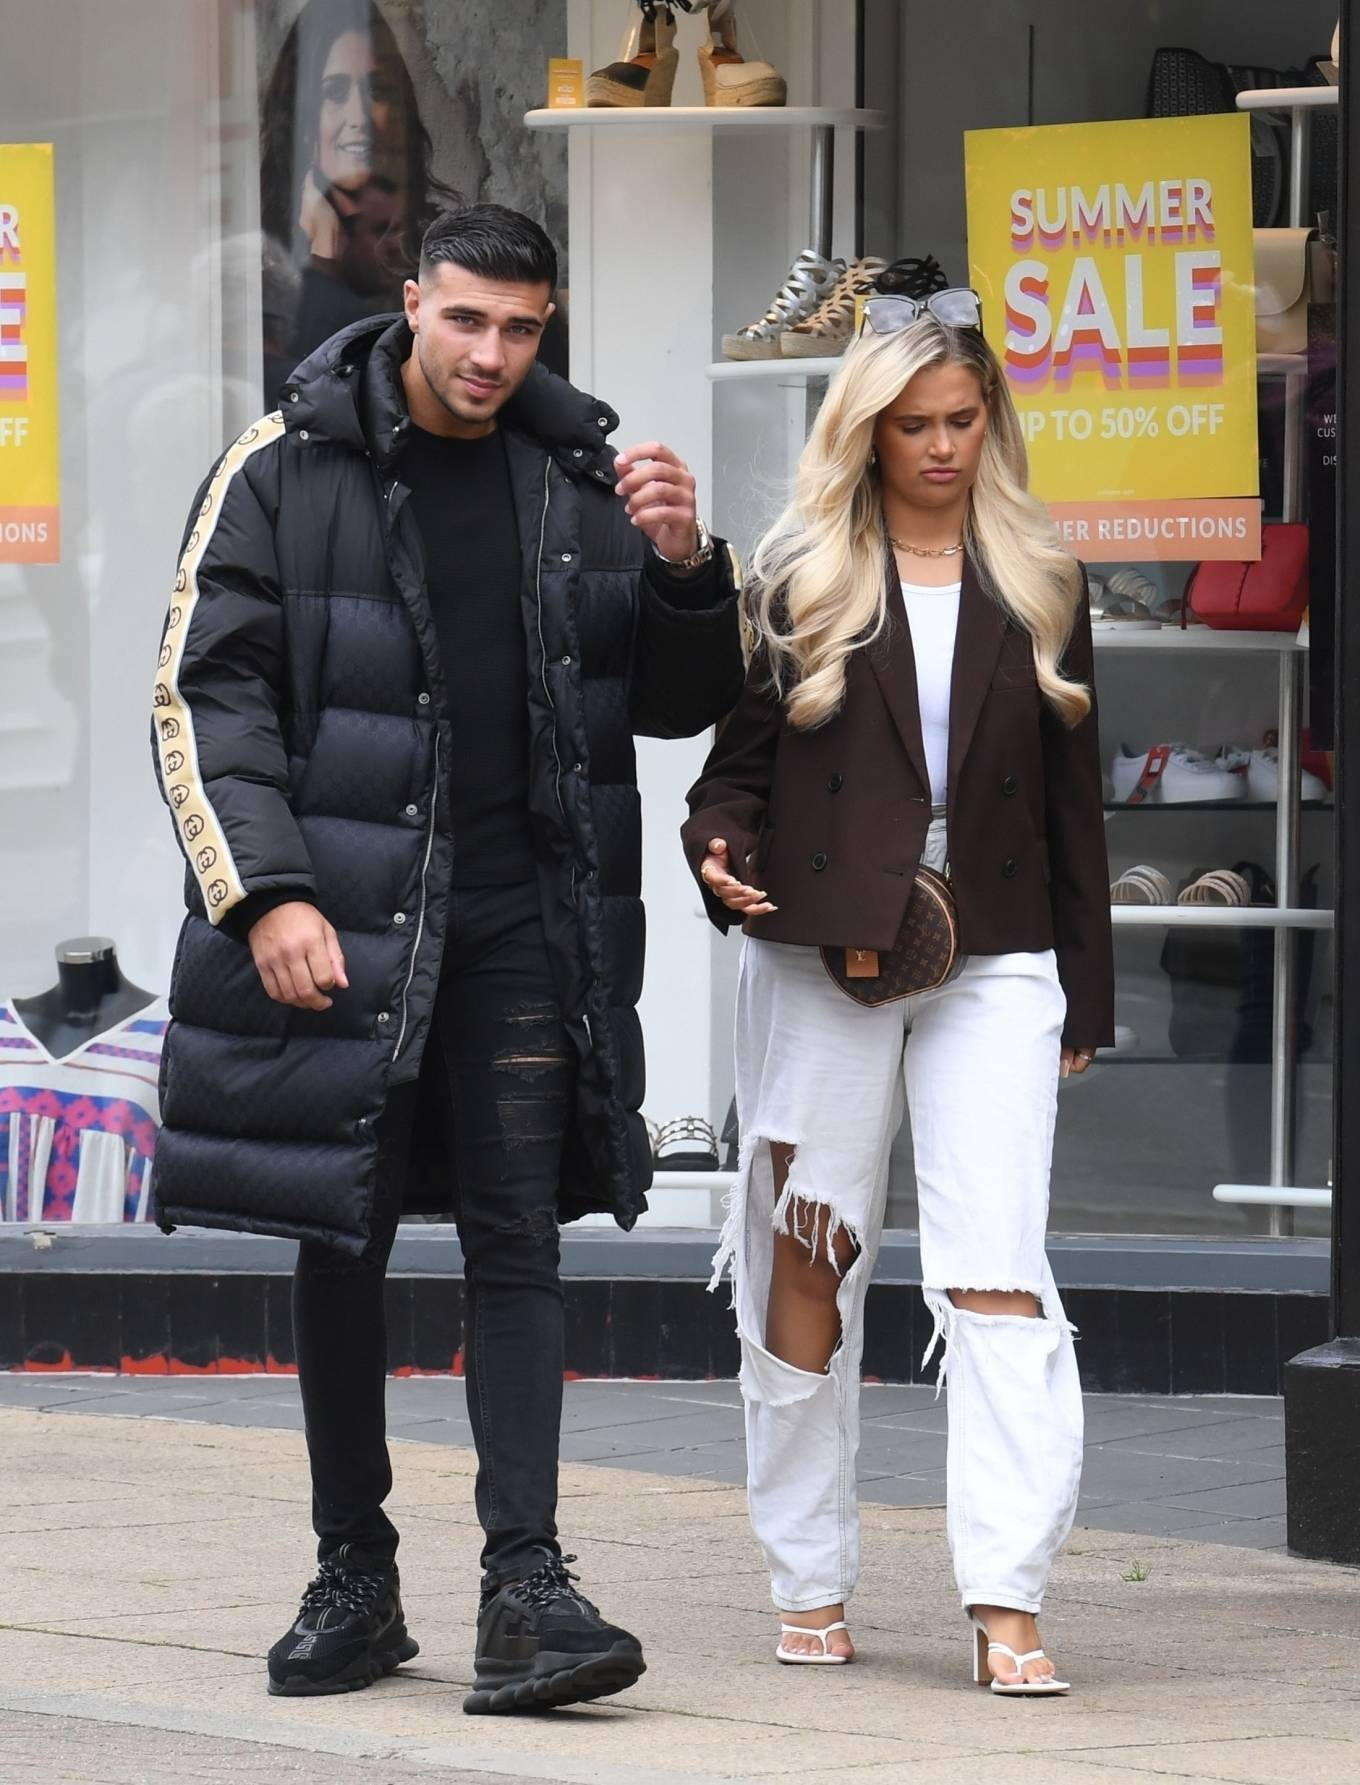 Molly-Mae Hague 2020 : Molly-Mae Hague and Tommy Fury – Seen while out in Cheshire -10